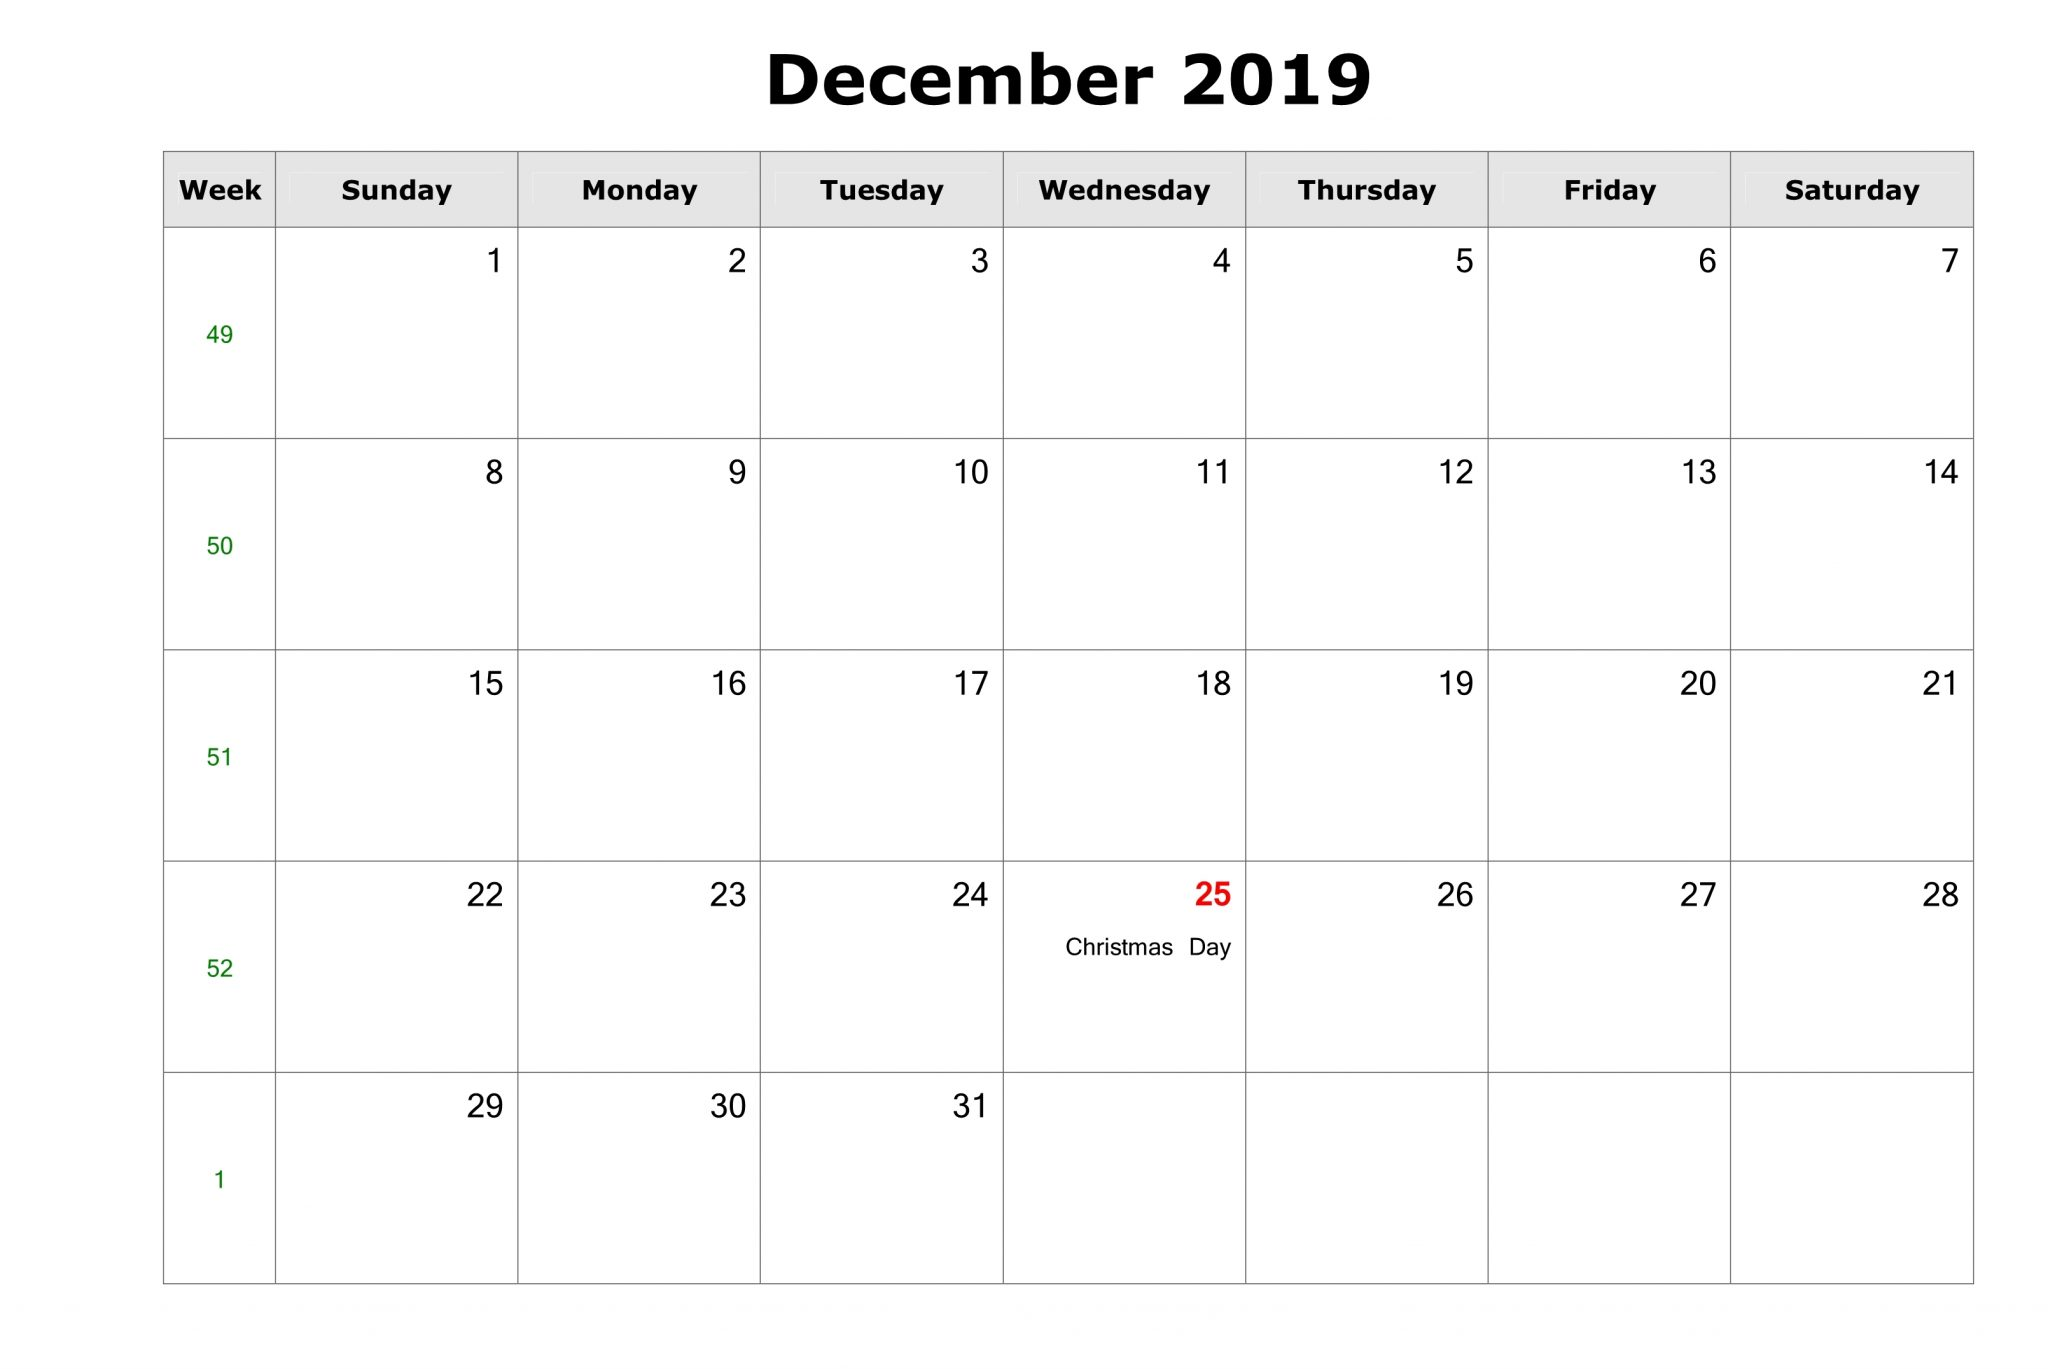 December 2019 Blank Calendar with US Holidays